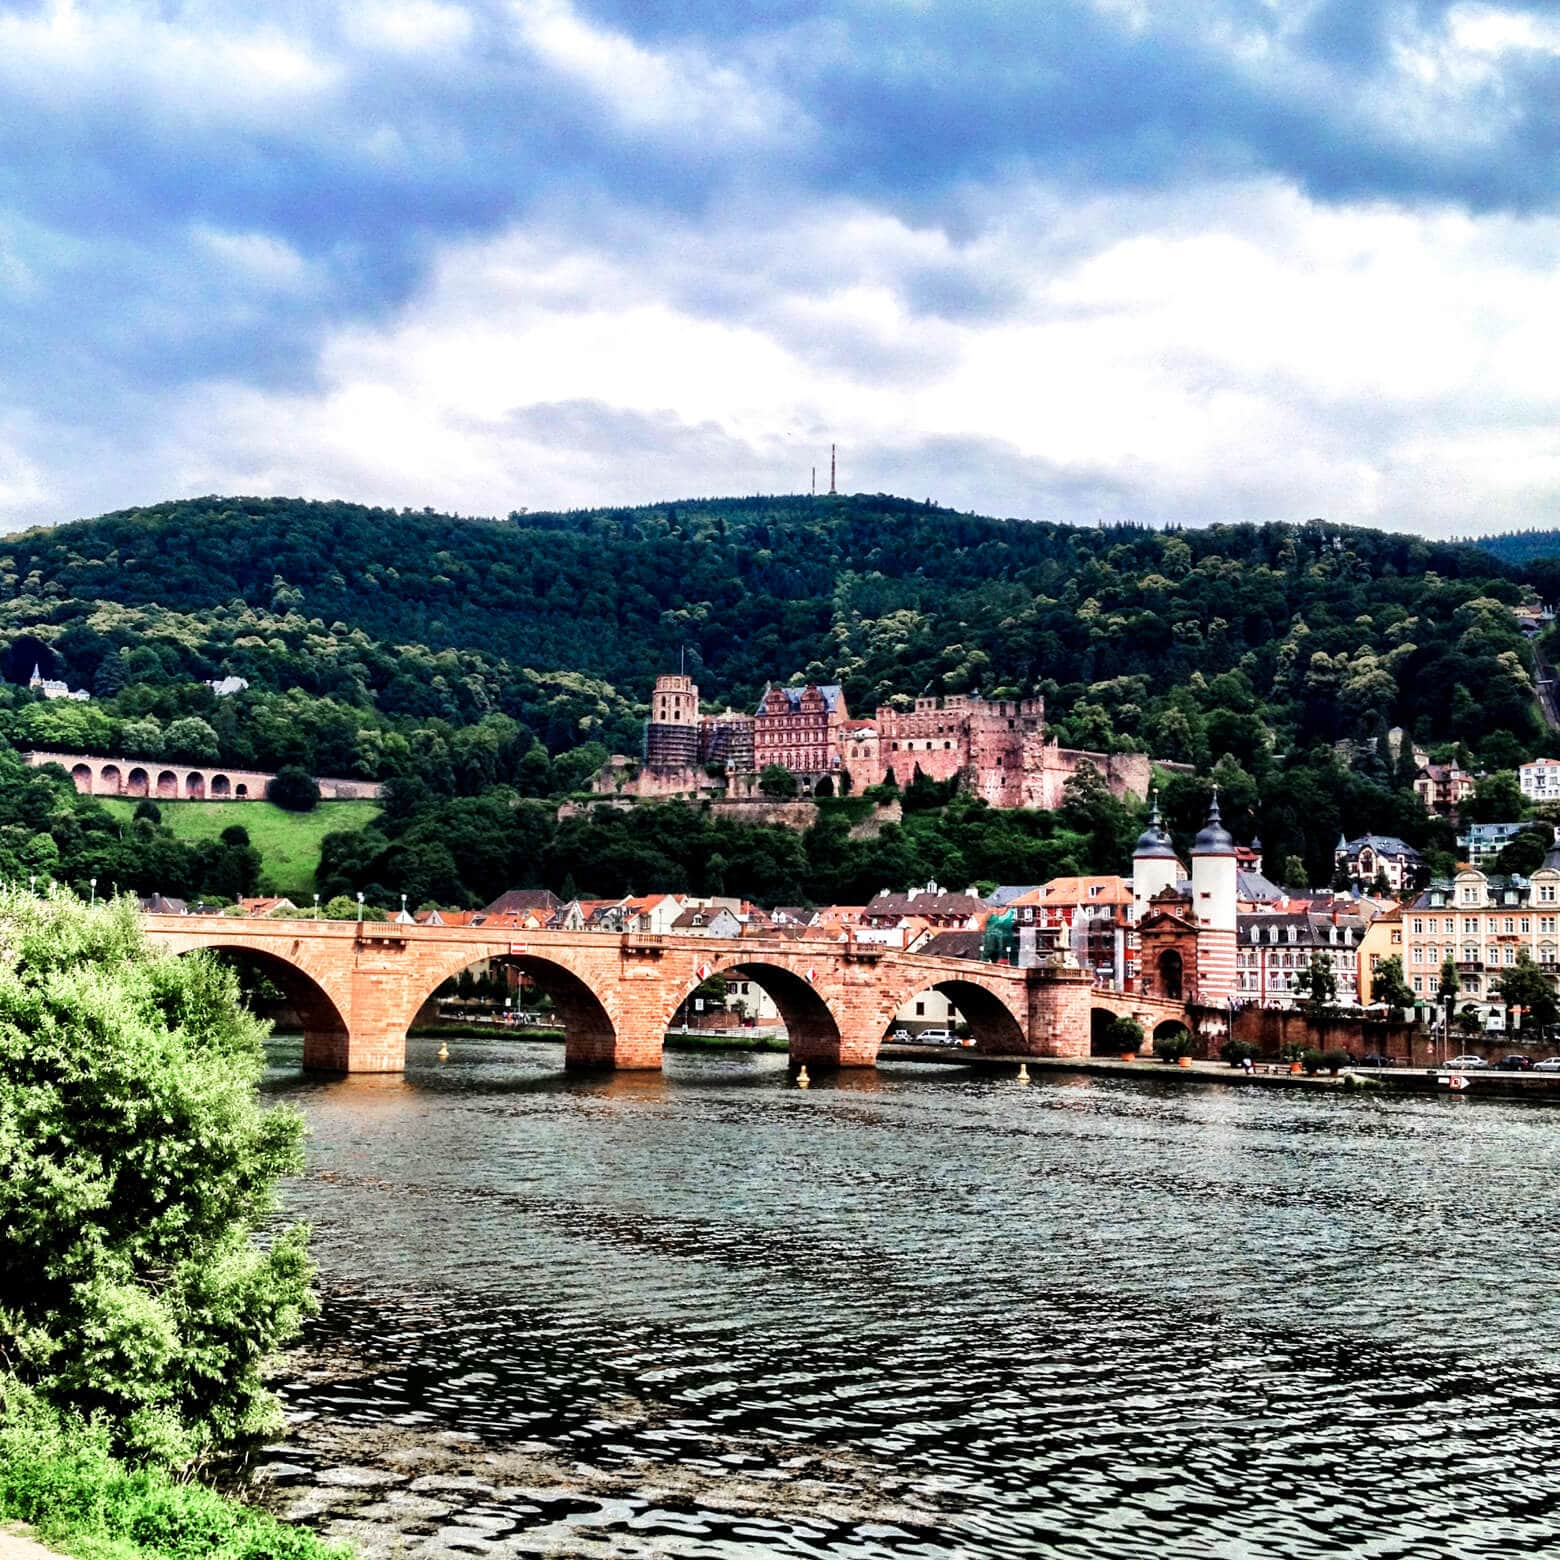 Heidelberg from the Riverside Park